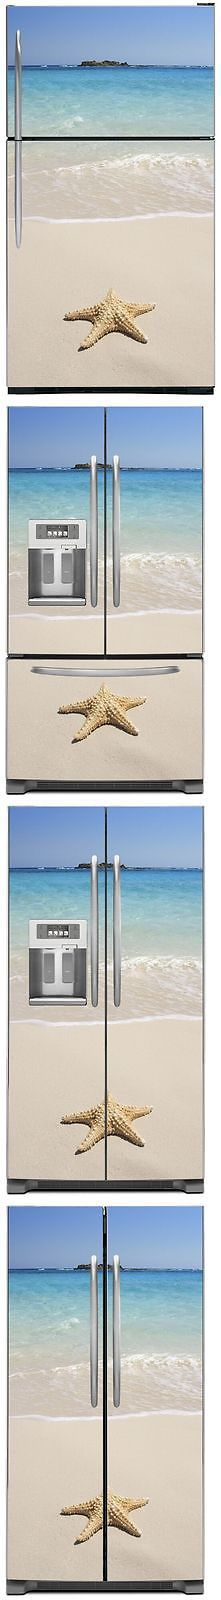 Refrigerator Magnets 20644: Starfish On Beach - Magnet Refrigerator Skin - Instant To Apply-On Sale Now! -> BUY IT NOW ONLY: $98.95 on eBay!